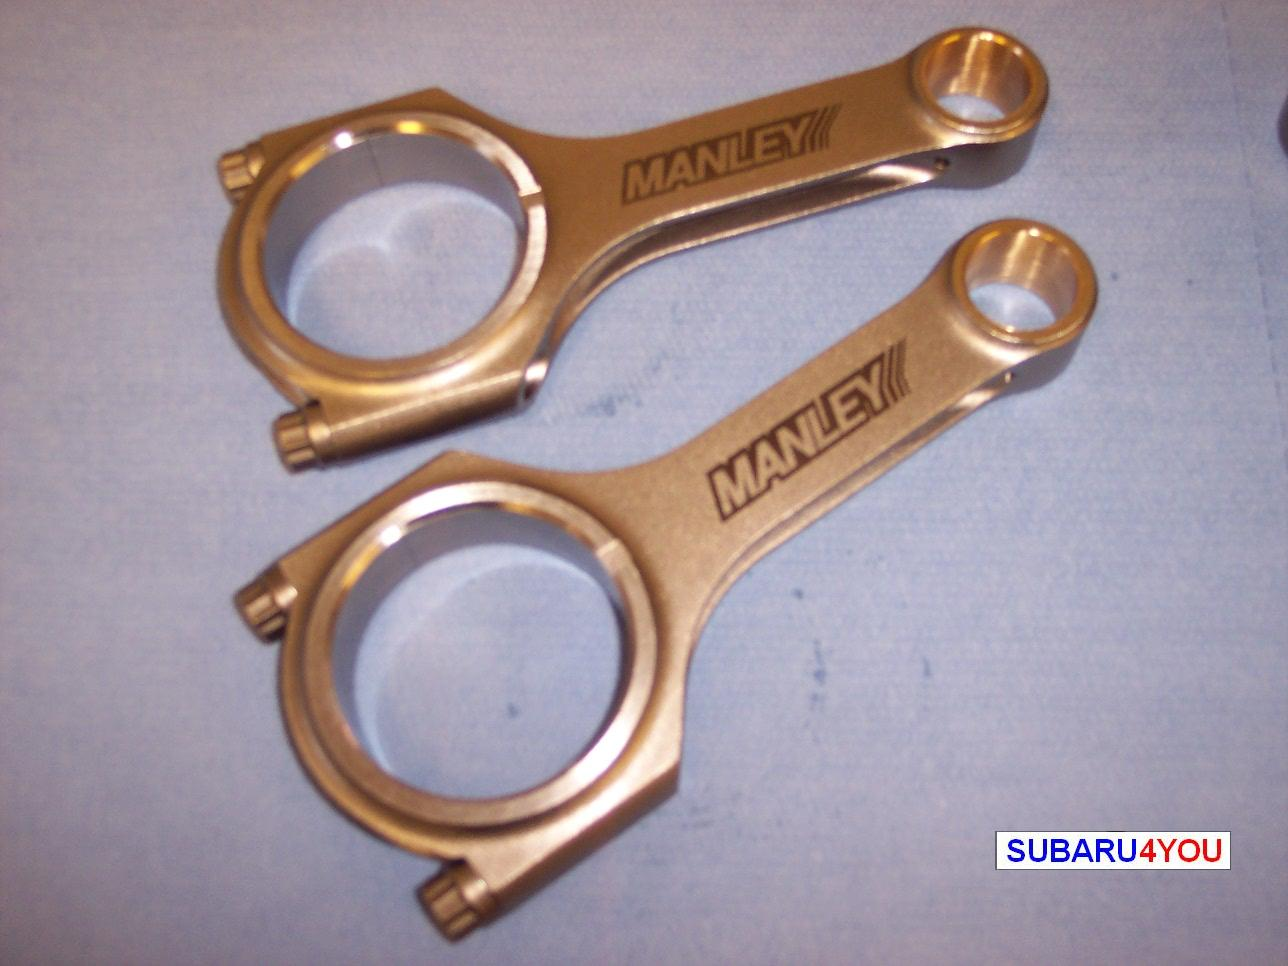 Subaru Conrod,  Manley Steel H Section Conrod